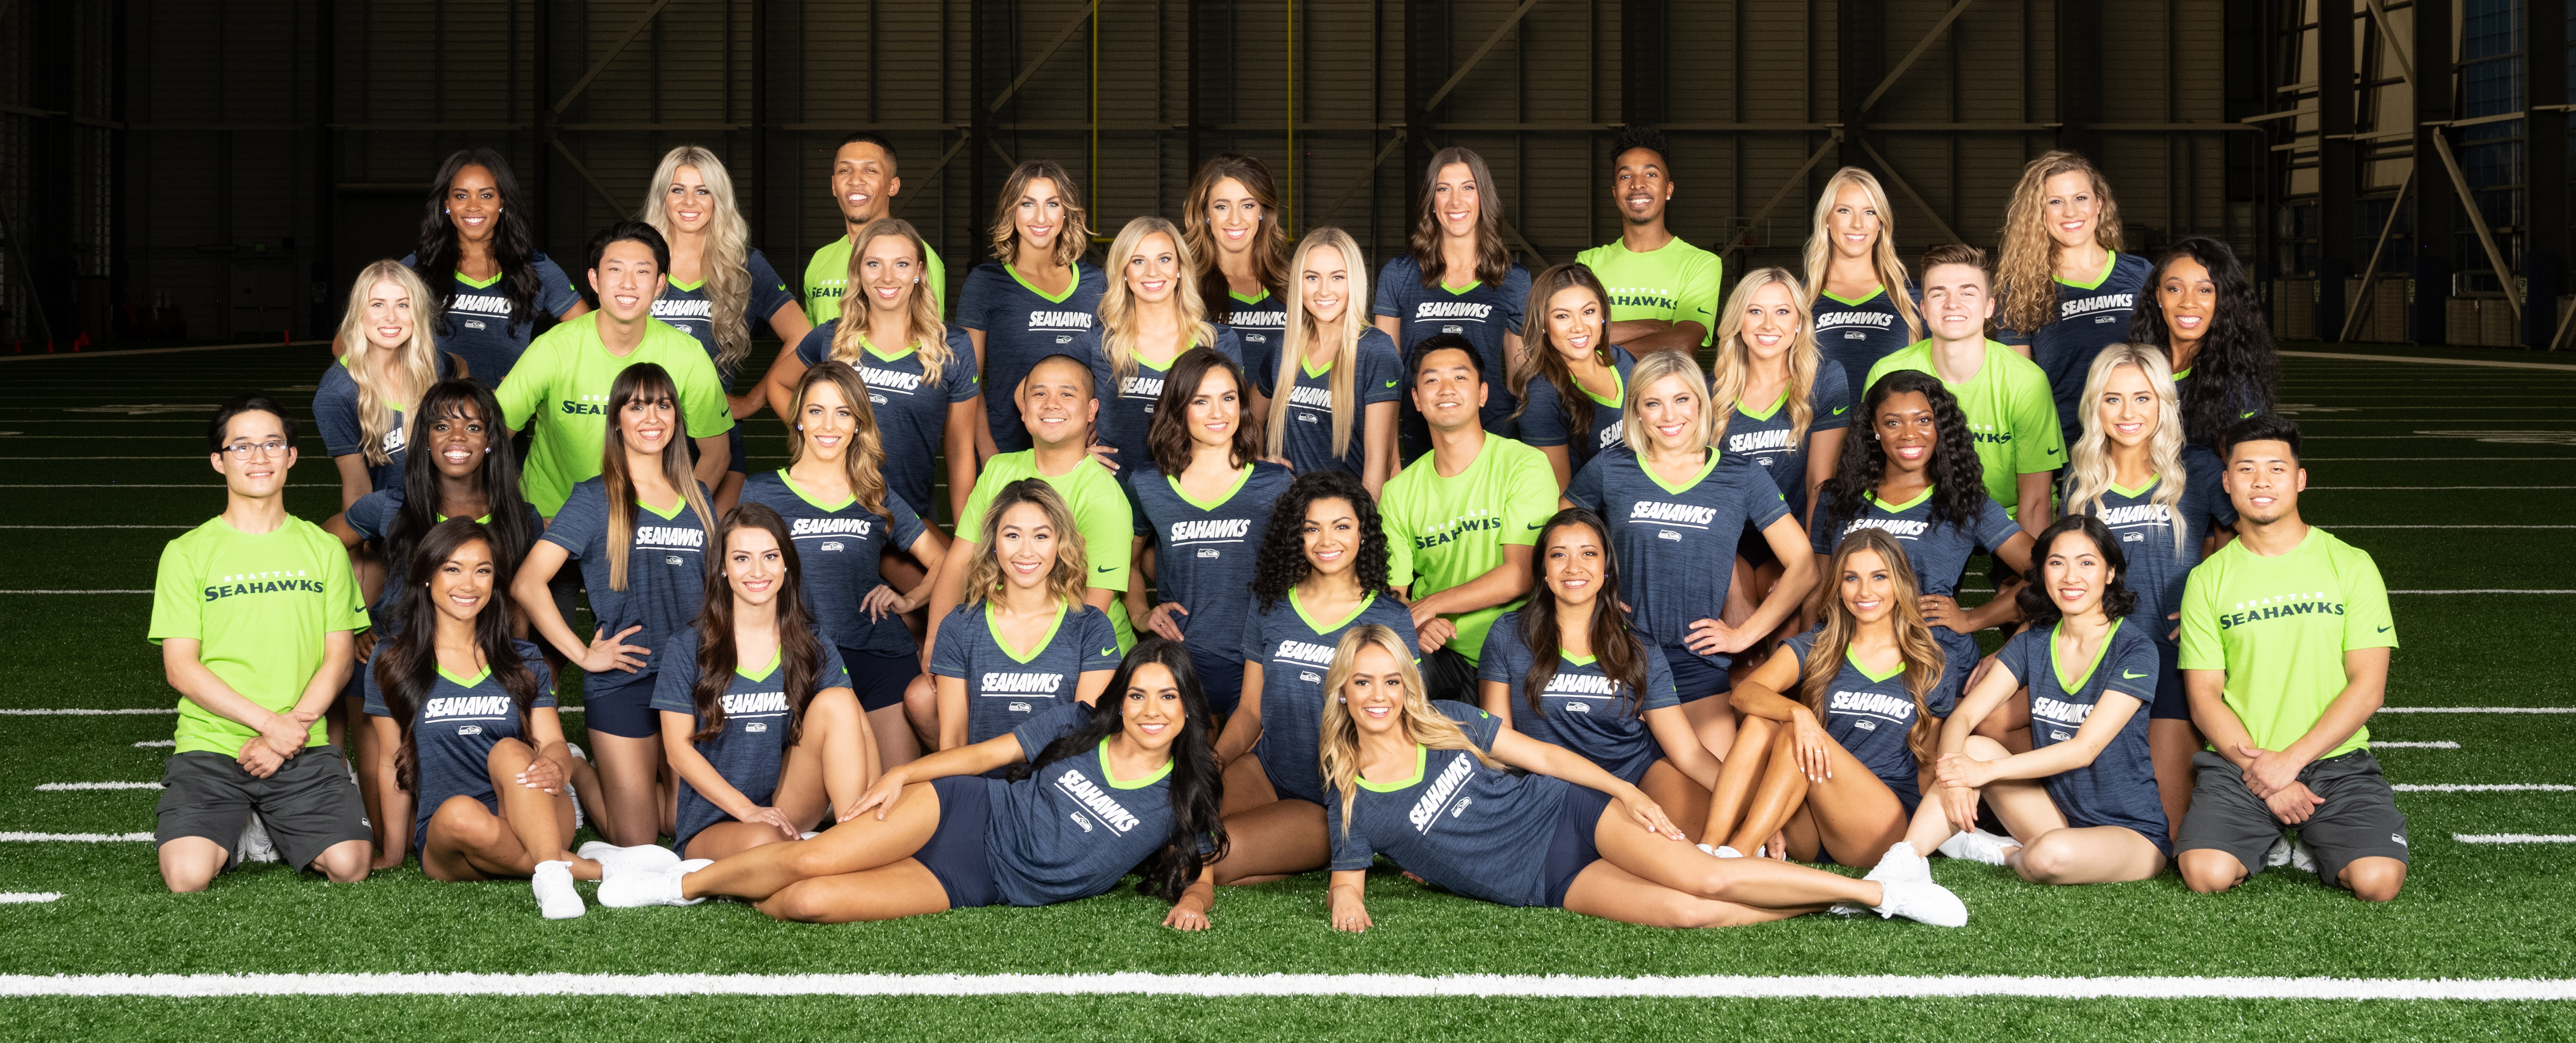 Announcing The Seahawks Dancers